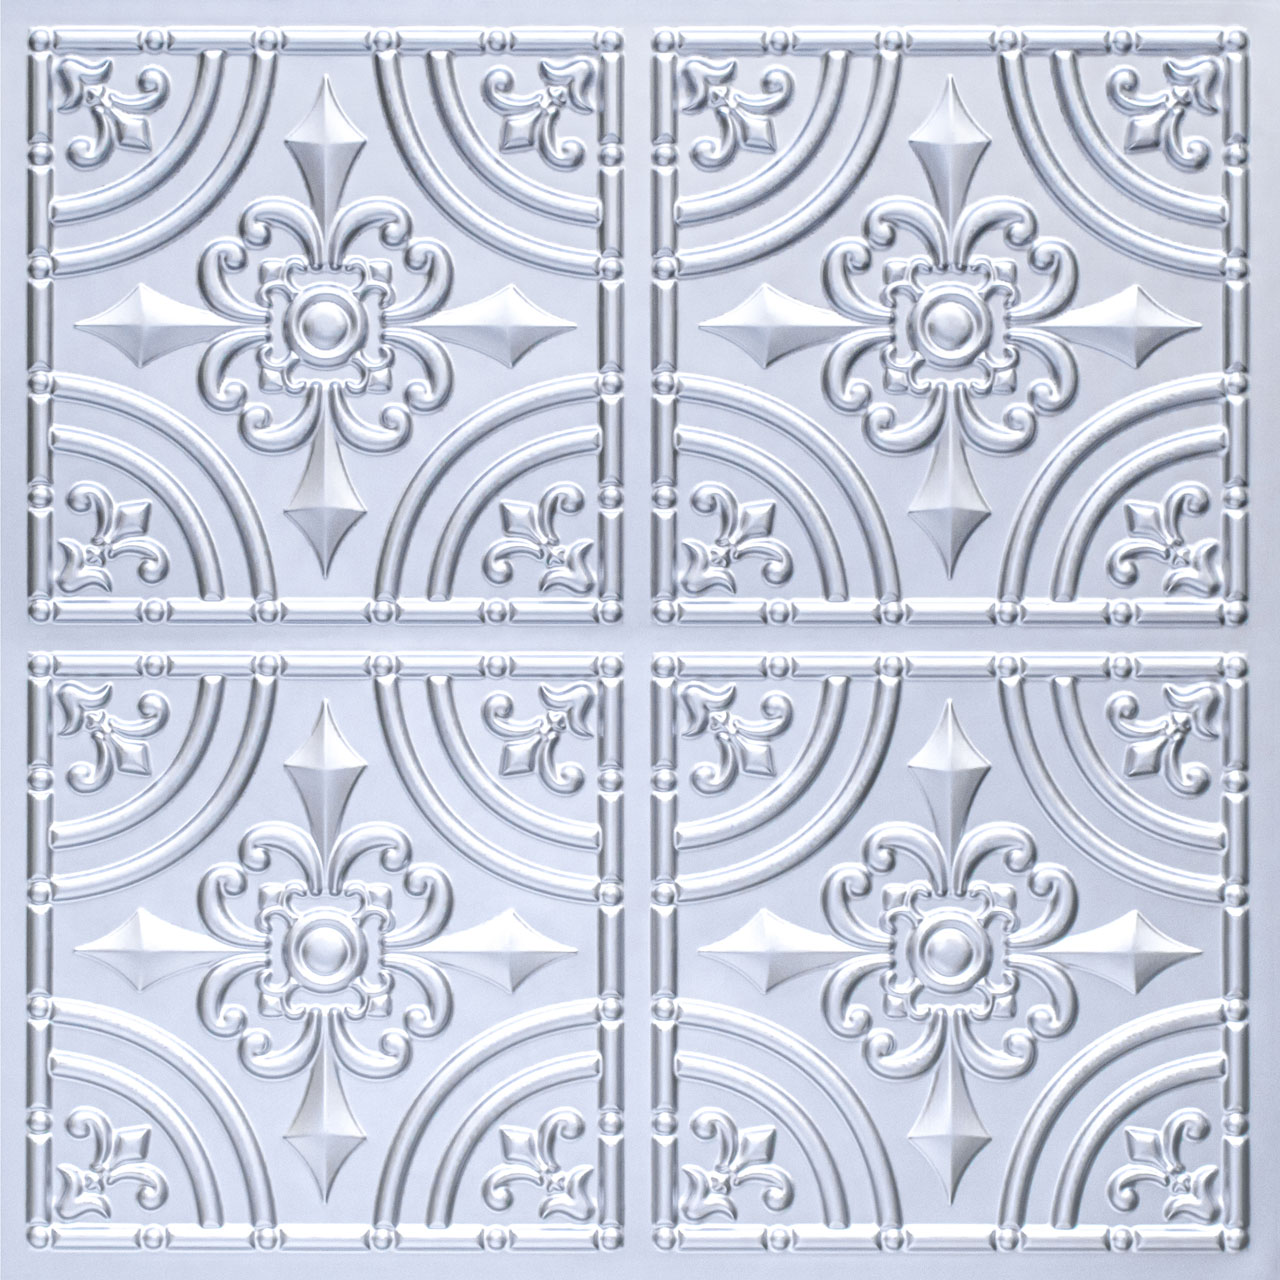 Wrought Iron - Faux Tin Ceiling Tile - Glue up - 24 in x 24 in - #205